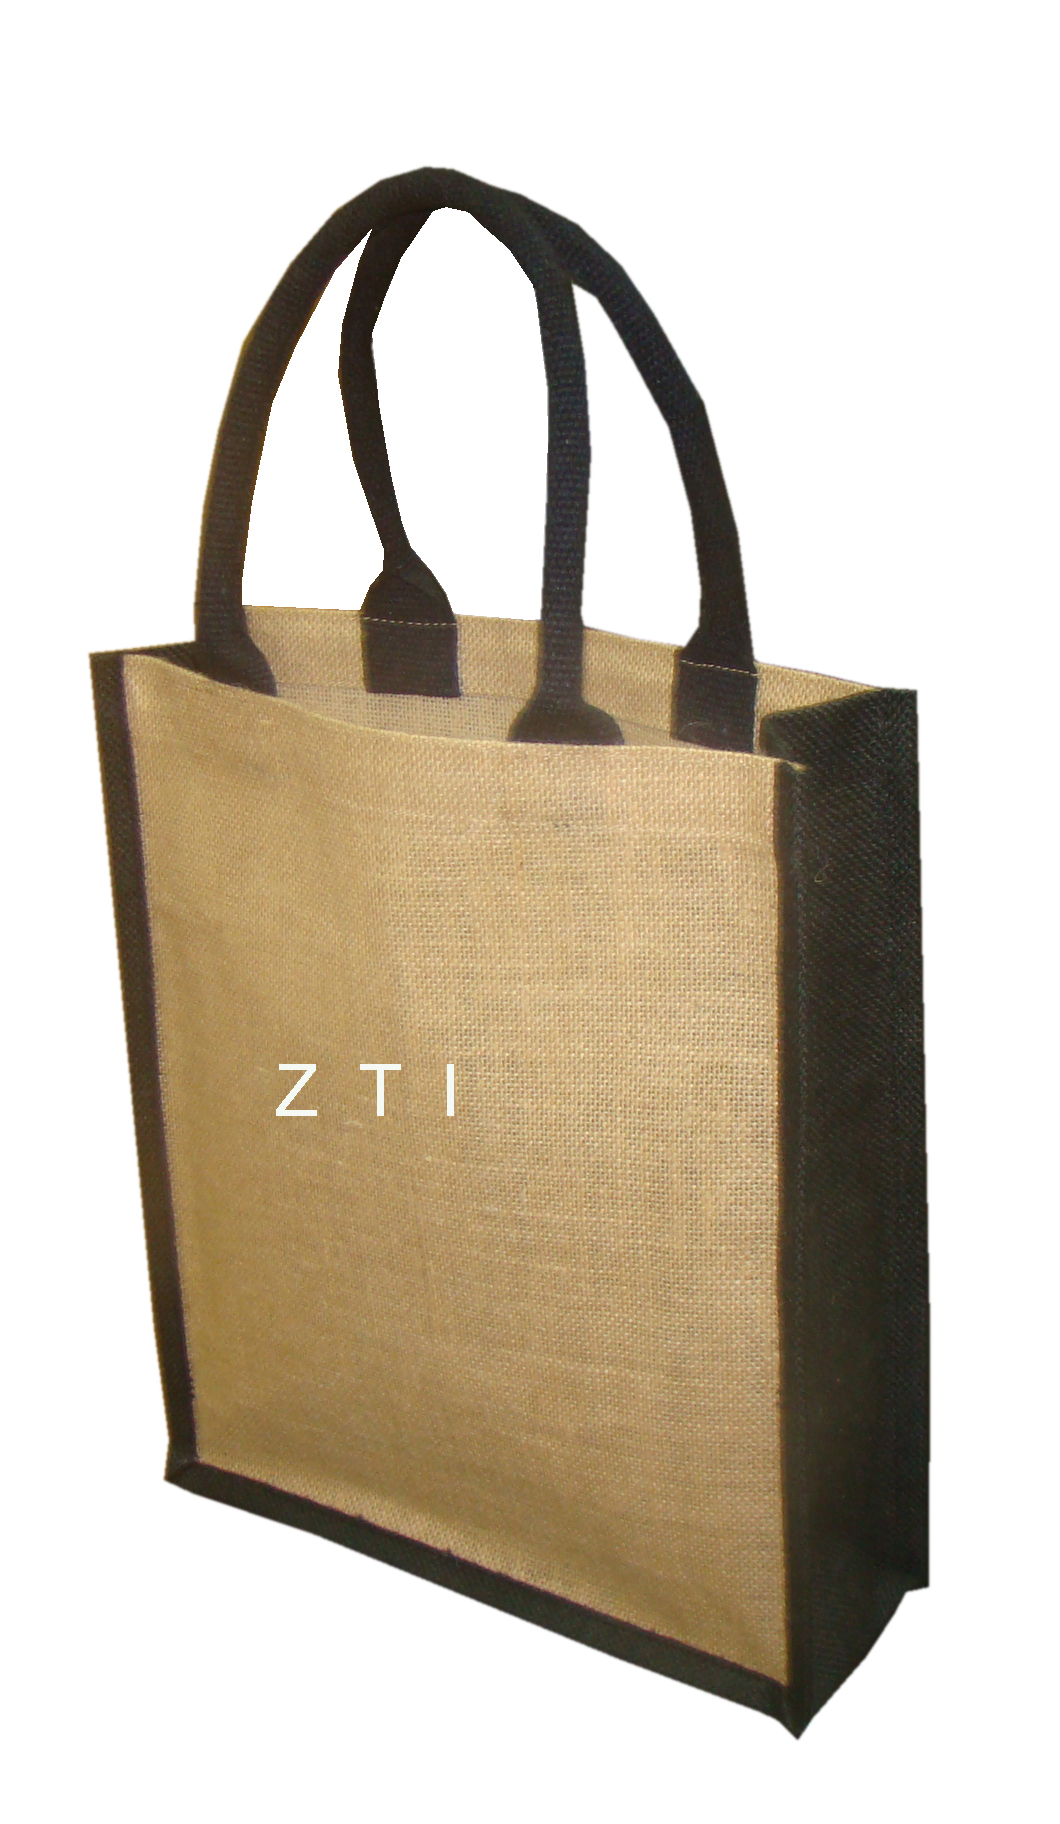 MODEL-NO.-JF-1140-SIZE-30x35x10cms.-PRICE-US-0.92